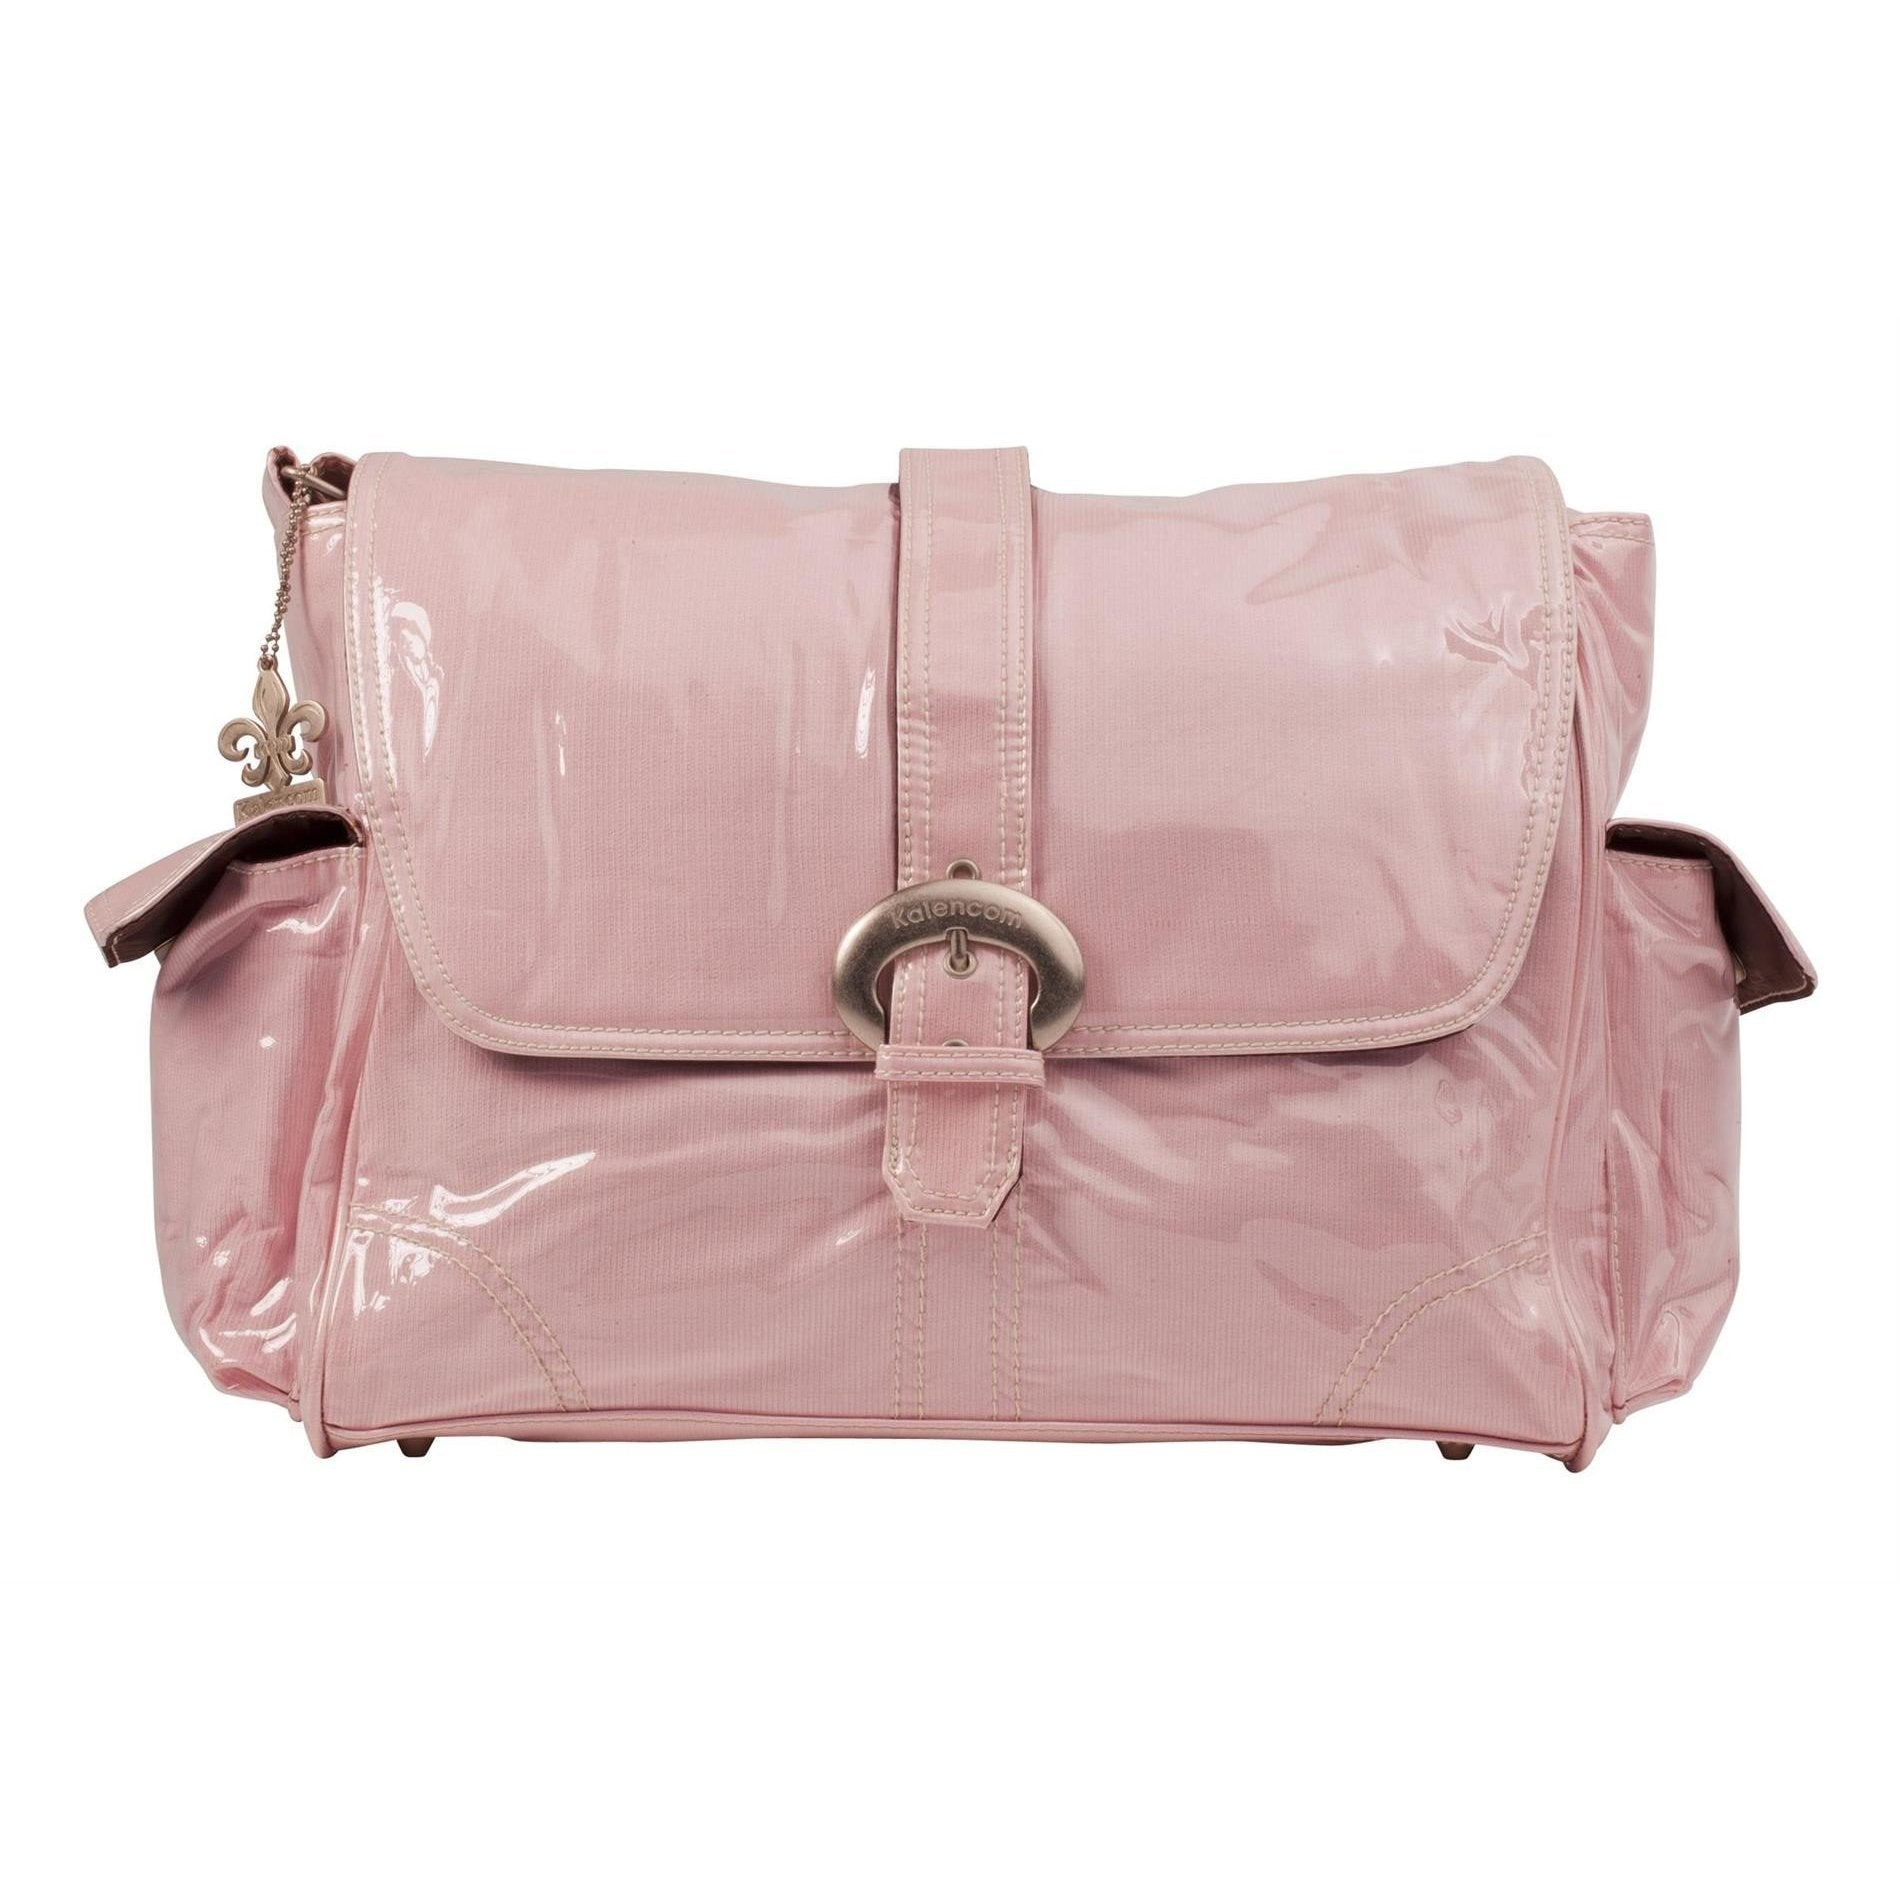 Baby Pink Corduroy Laminated Buckle Diaper Bag | Style 2960 - Kalencom-Diaper Bags-Default-Jack and Jill Boutique